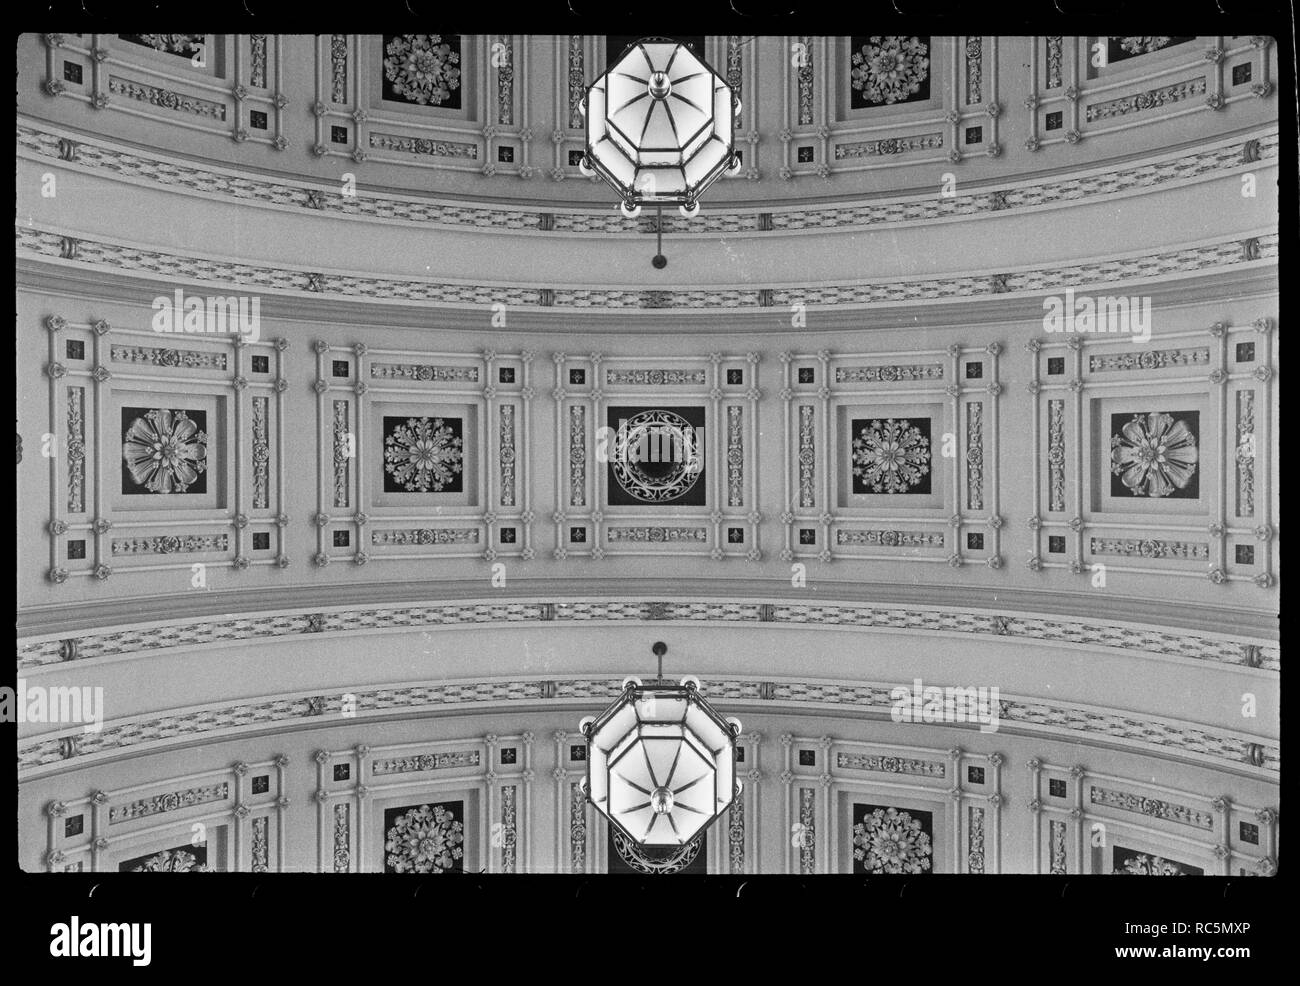 Ceiling of Victoria Hall, Town Hall, Victoria Square, Leeds, West Yorkshire, c1955-c1980. A detailed view of the ceiling in Victoria Hall, the main venue in the Town Hall, showing the richly ornamented ceiling, with individual plaster flowers within decorated squares. The town hall was built 1853-1858 by Cuthbert Brodrick, and alterations made by AW Morant in 1877. The image shows a detailed view of the ceiling, which has bands of ornamented square with individual flowers within them, all painted plasterwork. - Stock Image